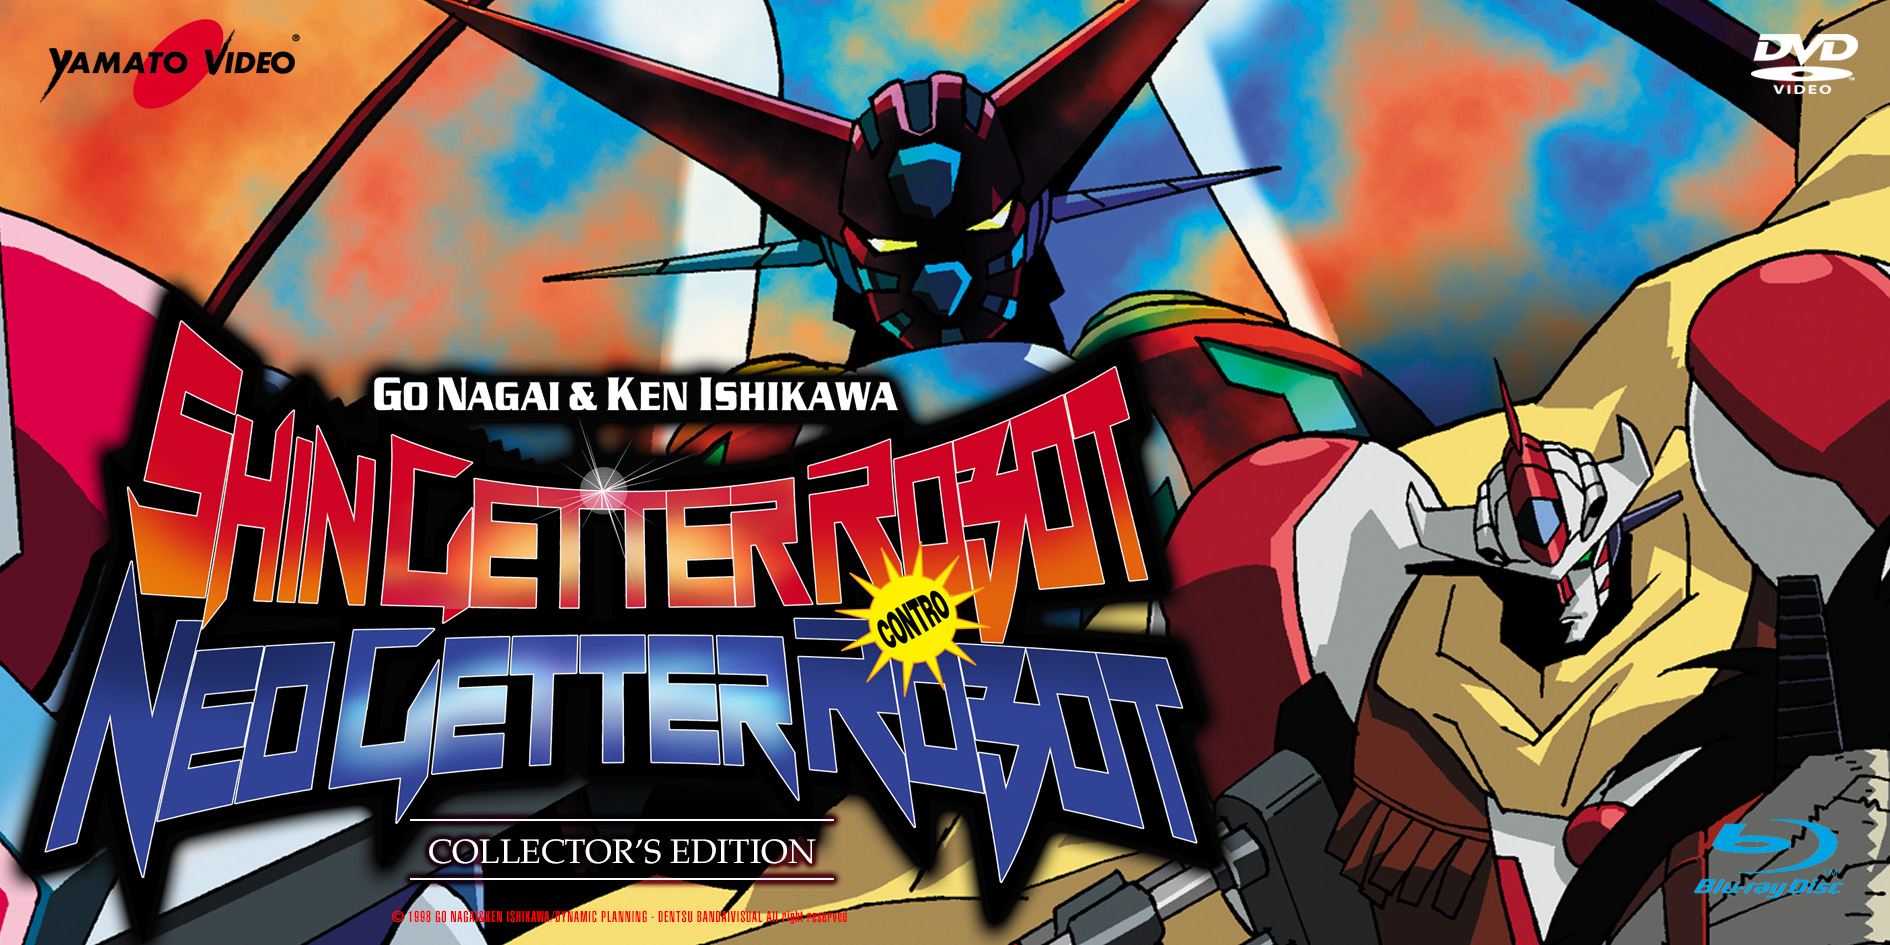 Shin Getter Robot Contro Neo Getter Robot